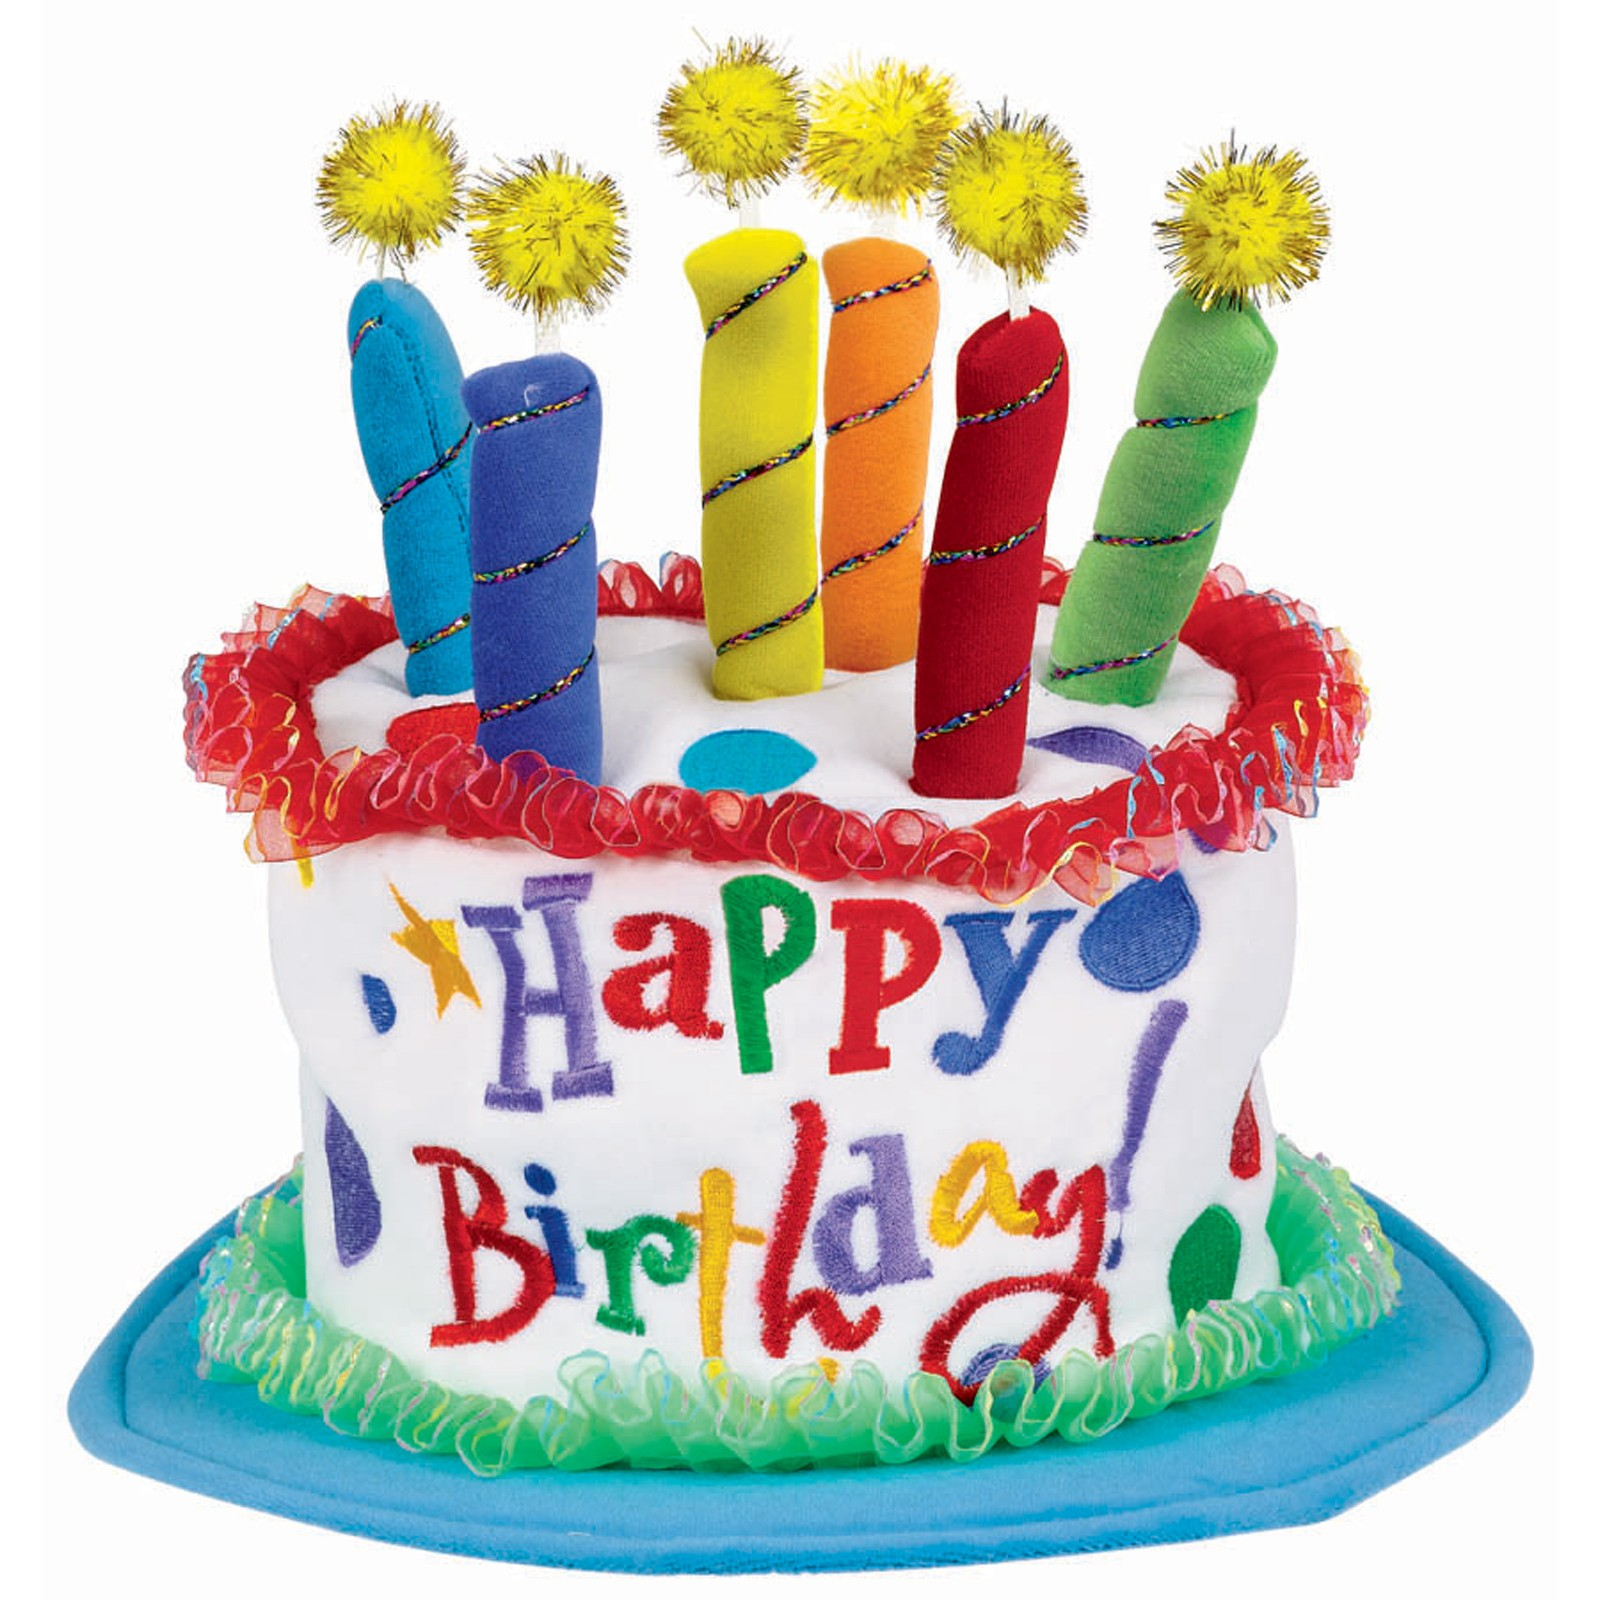 Pleasing Library Of Birthday Cake Boy Image Transparent Stock Files Funny Birthday Cards Online Sheoxdamsfinfo